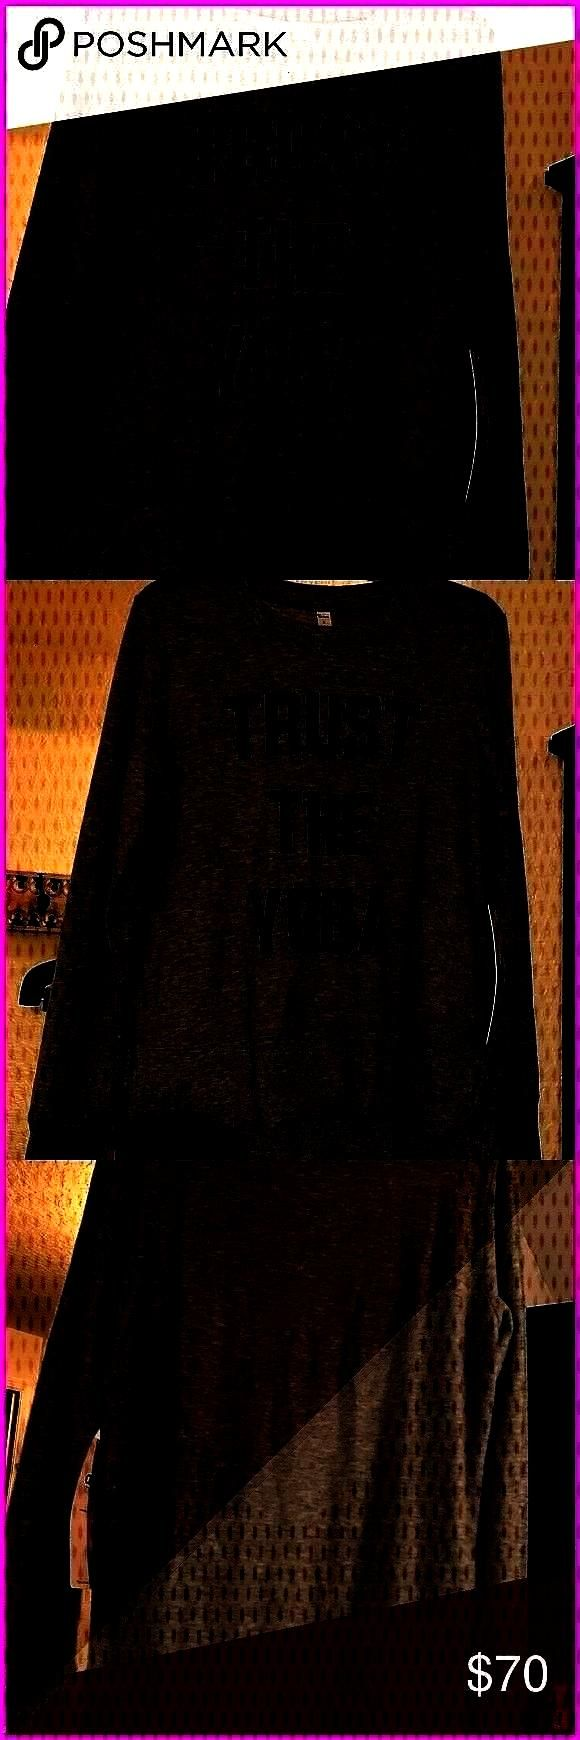 size small nwt New size small alo yoga glimpse long sleeve top Trust the yoga motto ALO Yoga Tops S